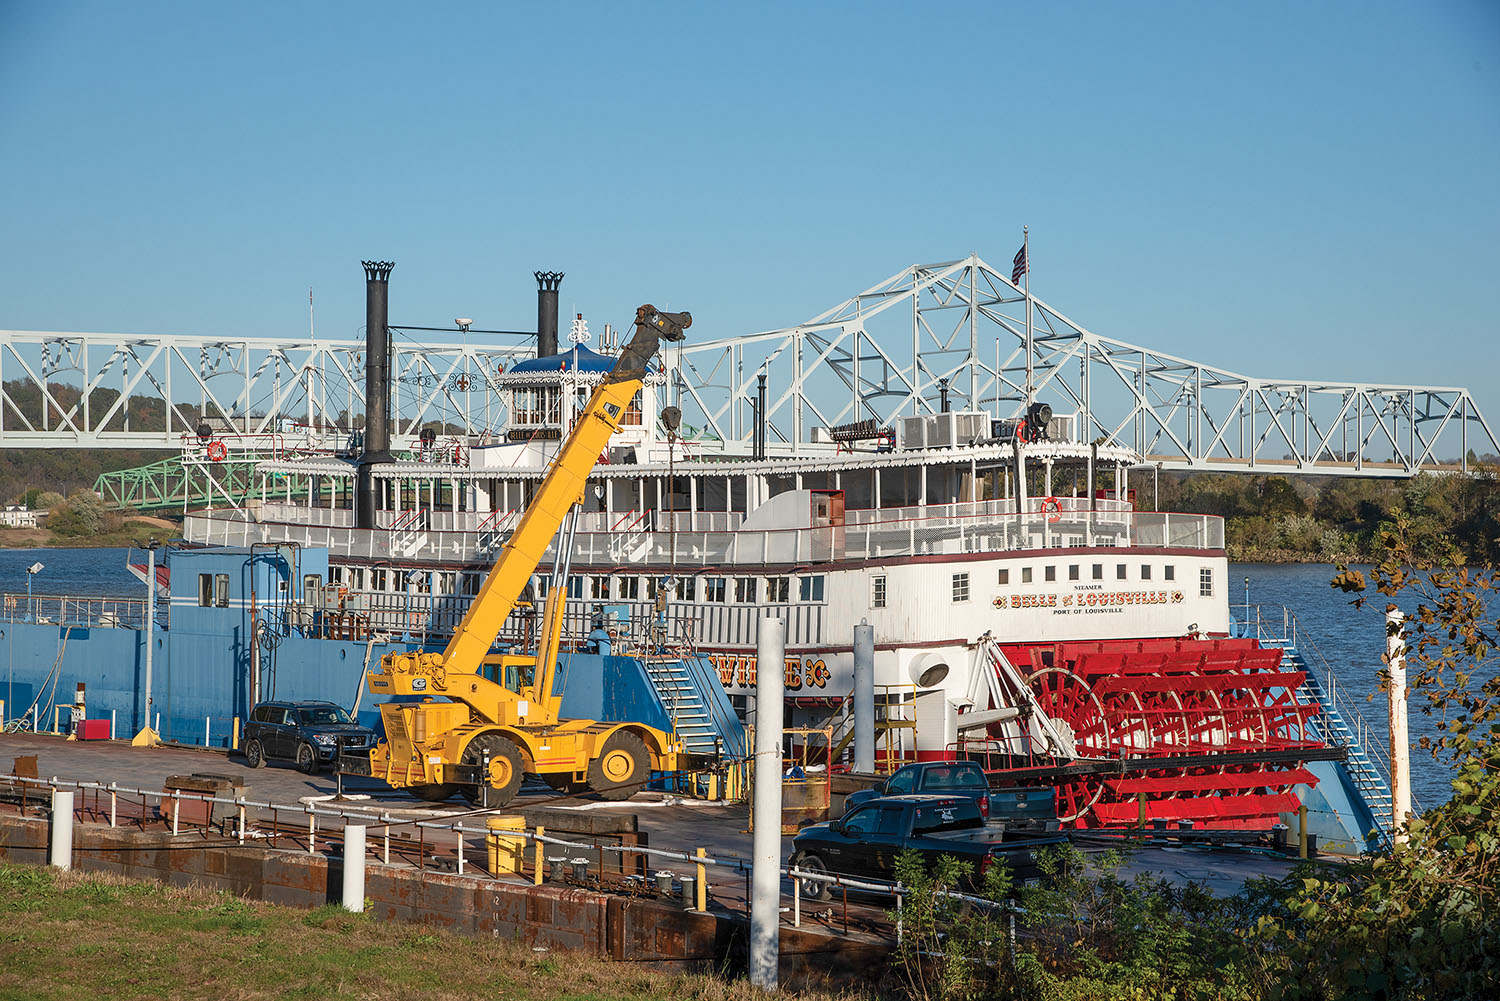 The Belle of Louisville sits in drydock after undergoing Coast Guard inspection and awaiting completion of repairs before returning to Louisville for the winter. (Photo by Jim Ross)